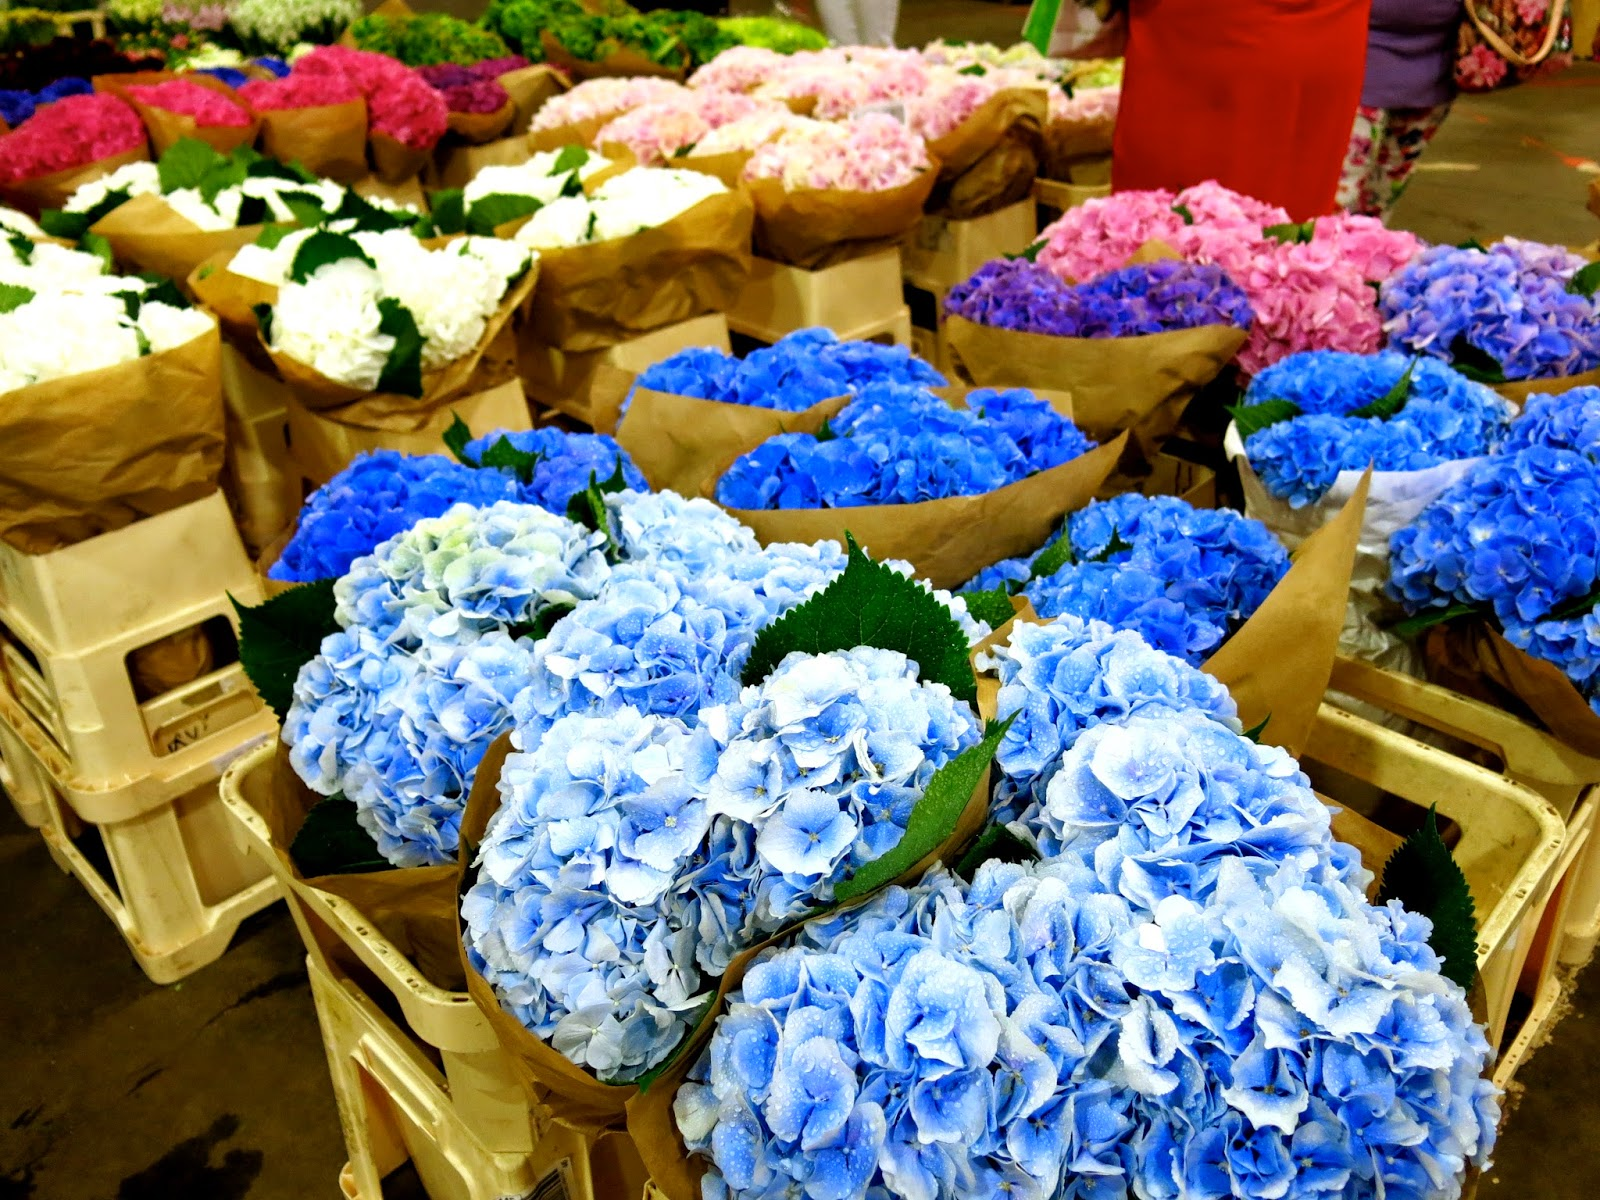 One Of My Favourite Flowers Is The Hydrangea It So Fluffy Huge And Totally Reminds Me Cotton Candy Receiving A Pot Can Really Brighten